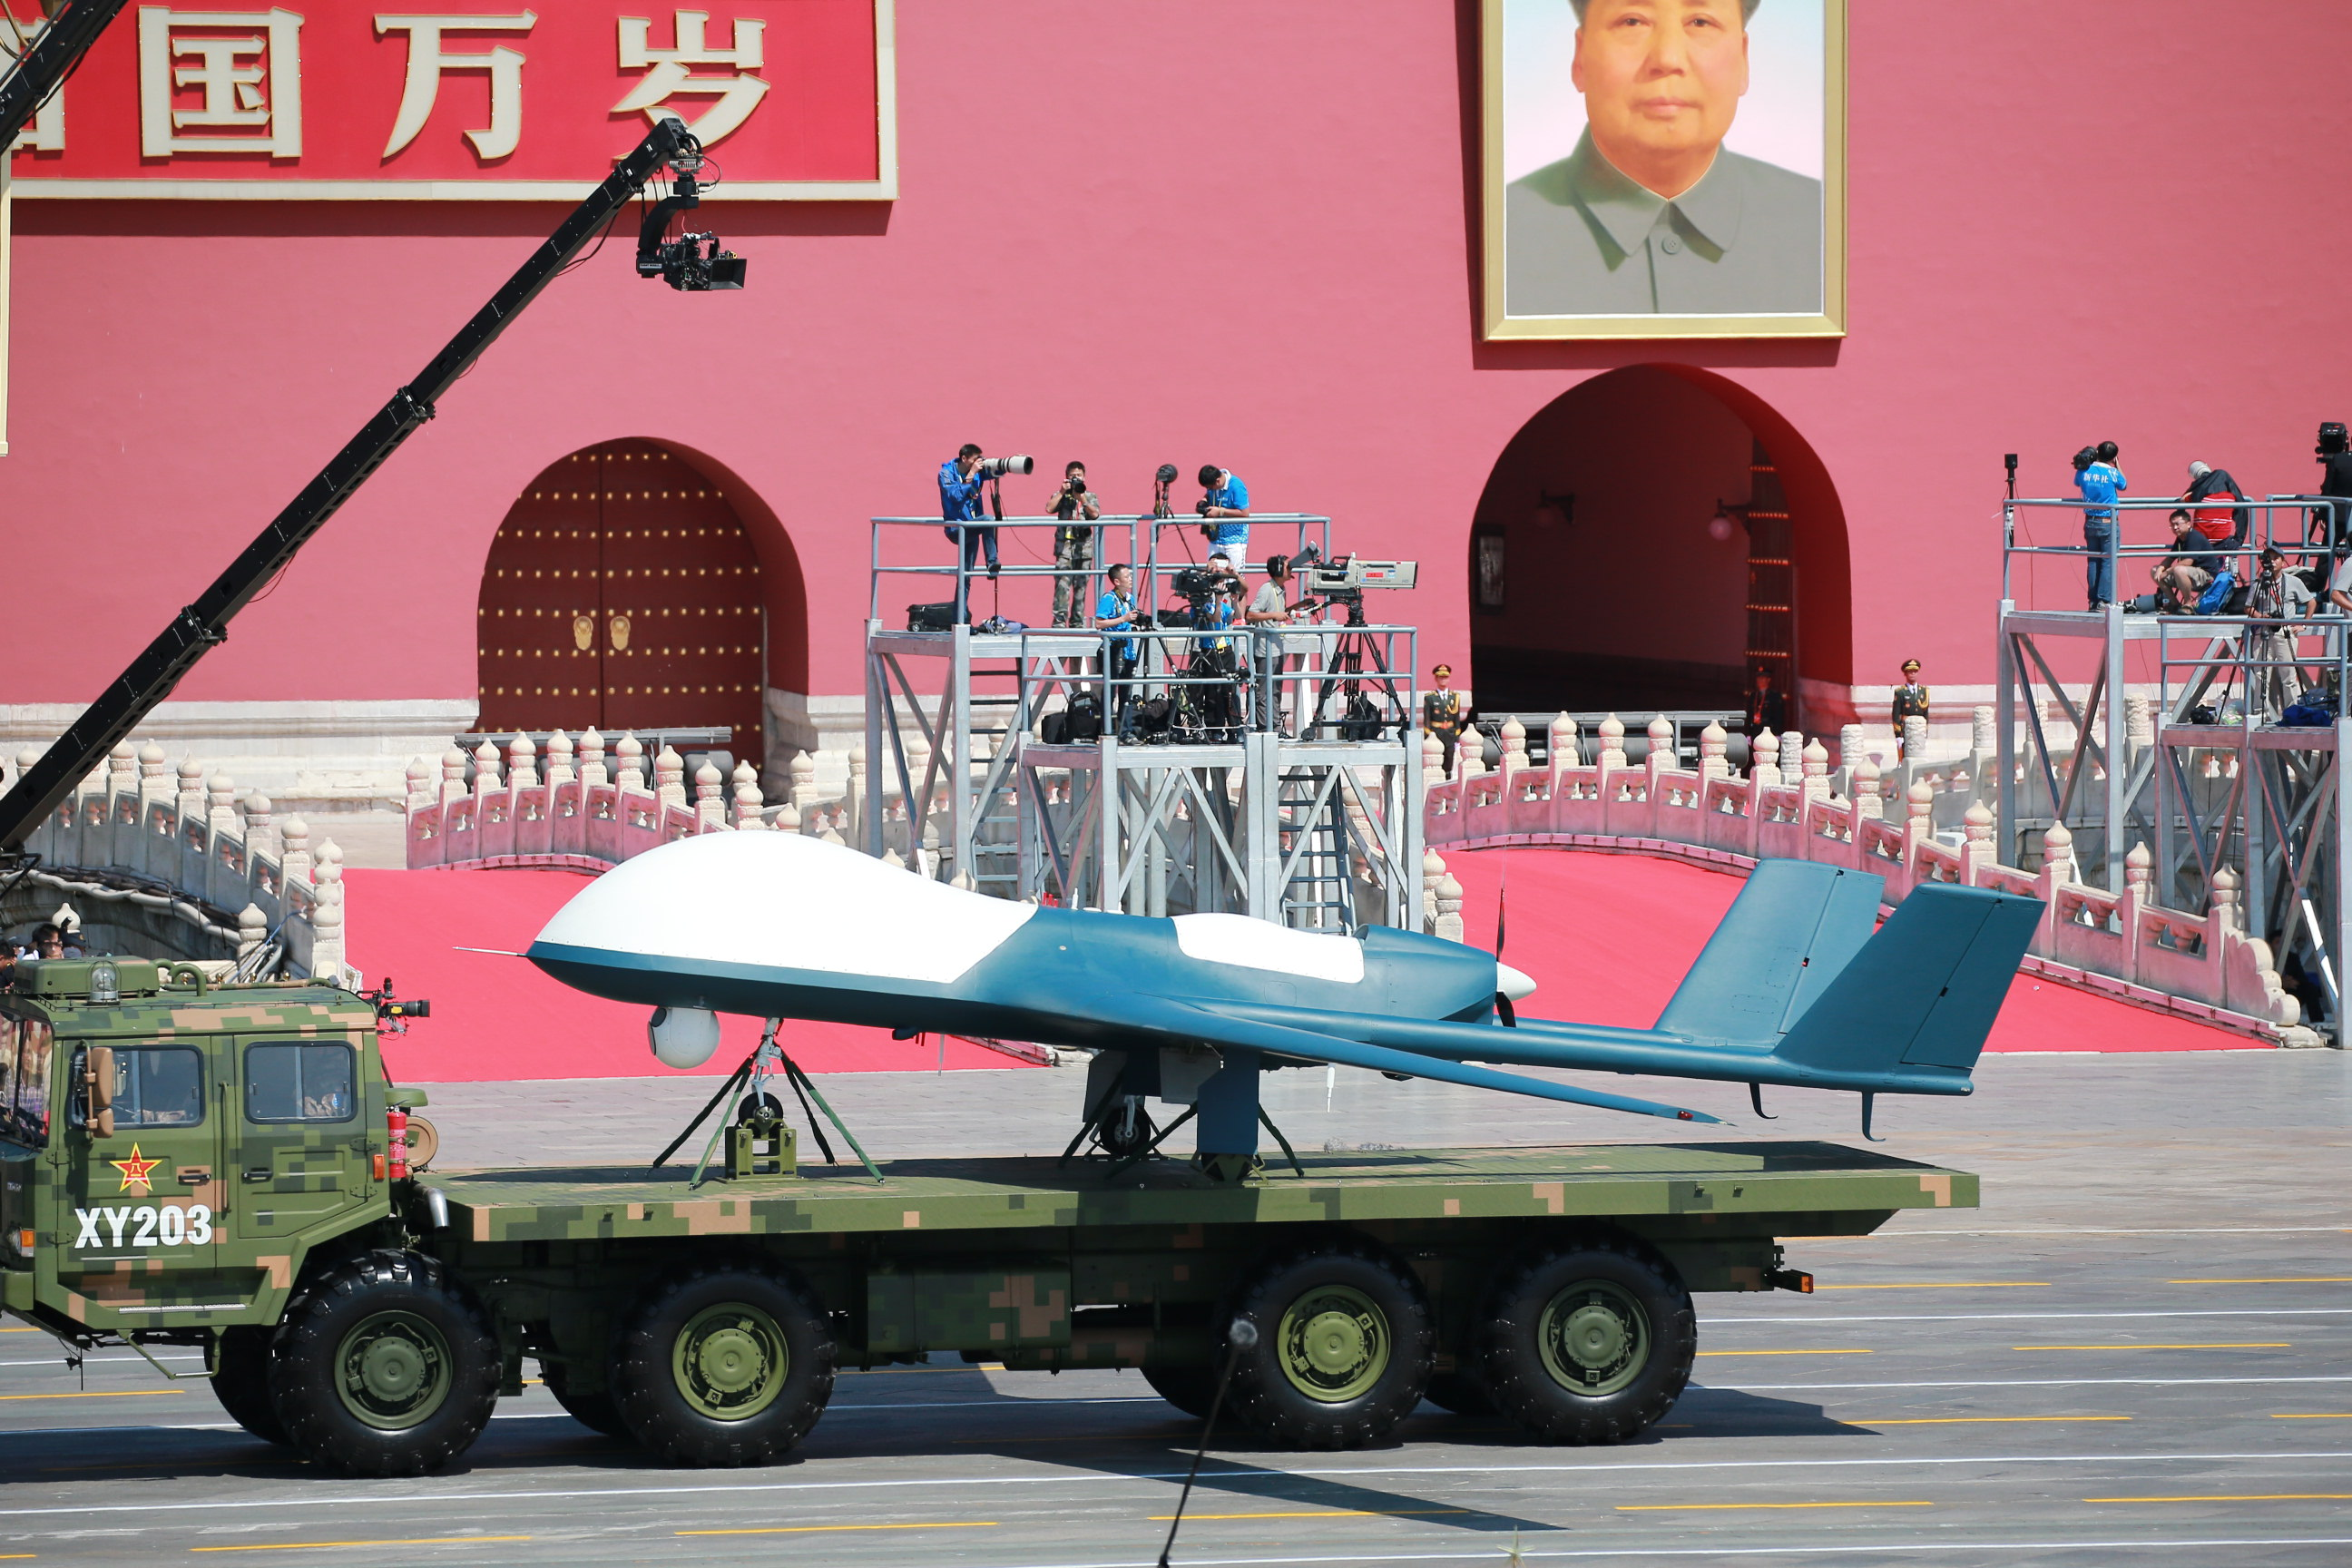 A military vehicle carrying a Wing Loong drone marches past the Tiananmen Rostrum in Beijing, China on Sept. 3 2015.